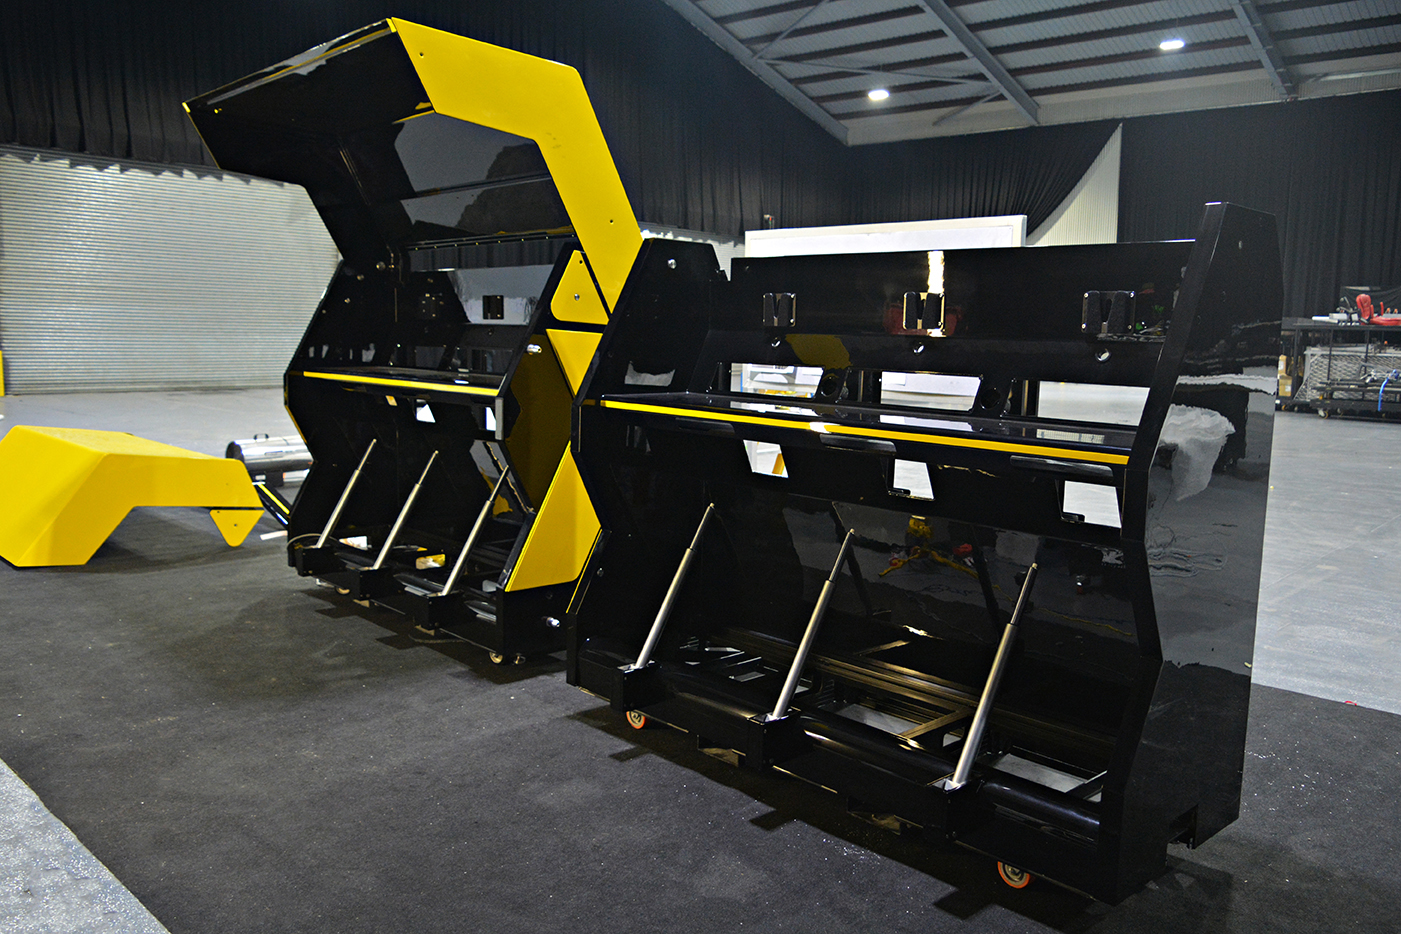 Renault F1 Pit wall Telemetry pods